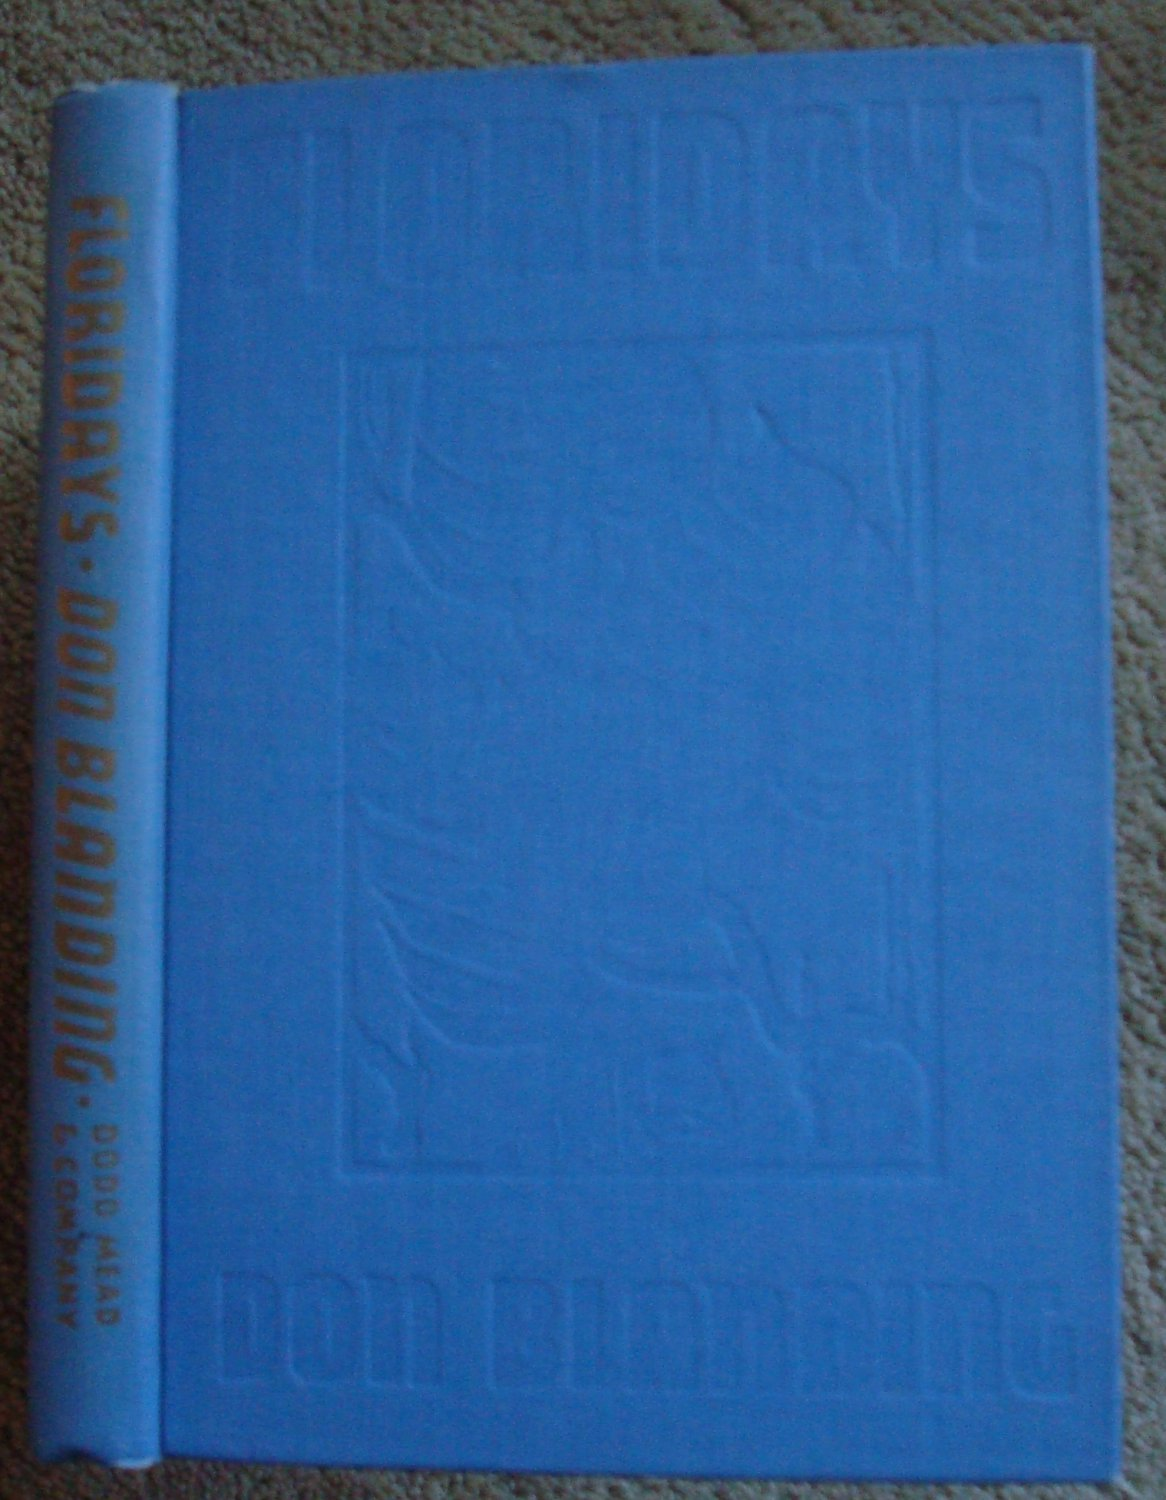 Floridays - Don Blanding, Signed and Inscribed by the Author